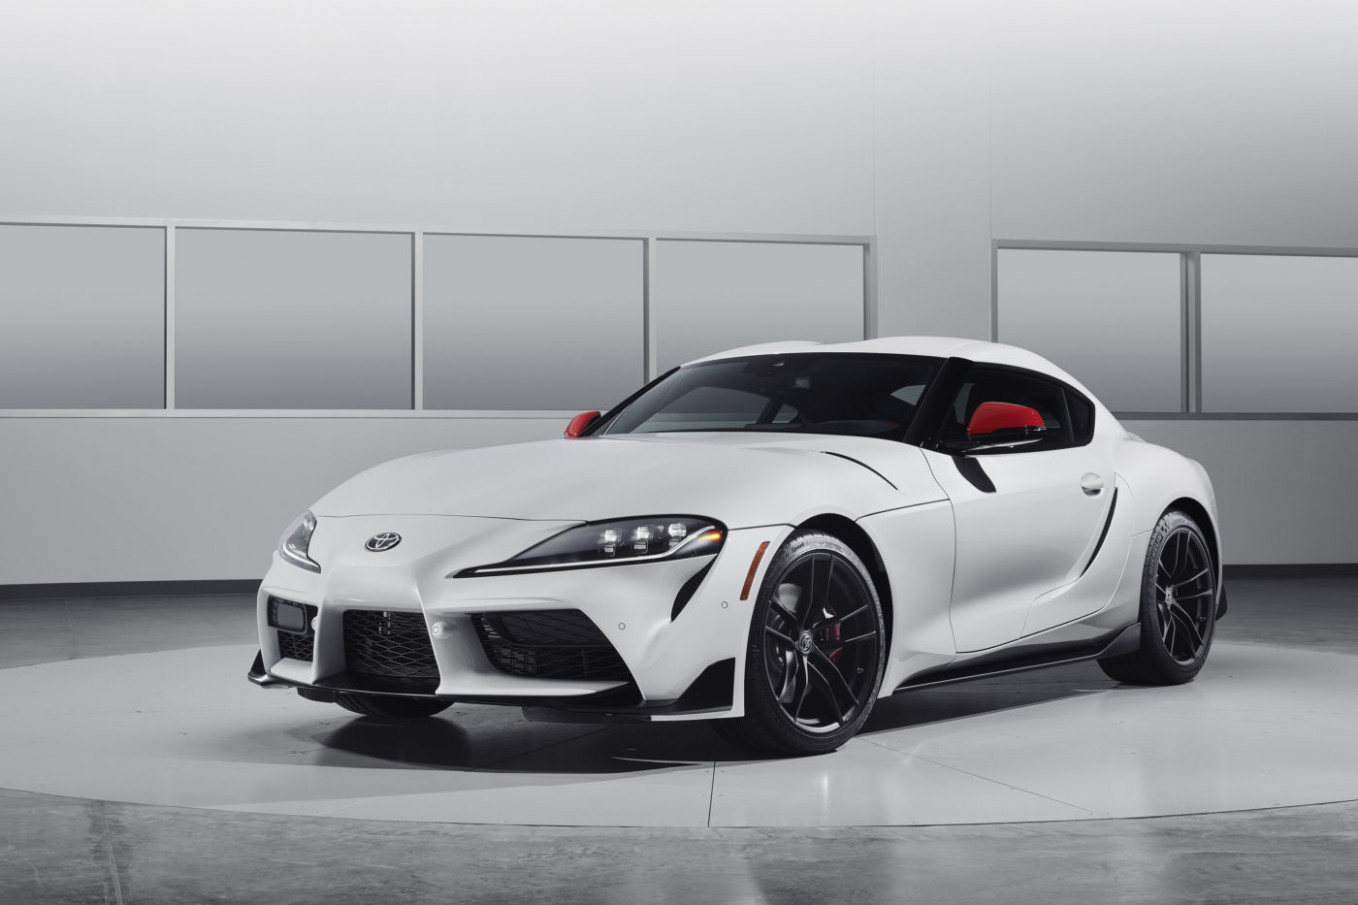 8 Toyota Supra Price, Specs, Photos, & Review